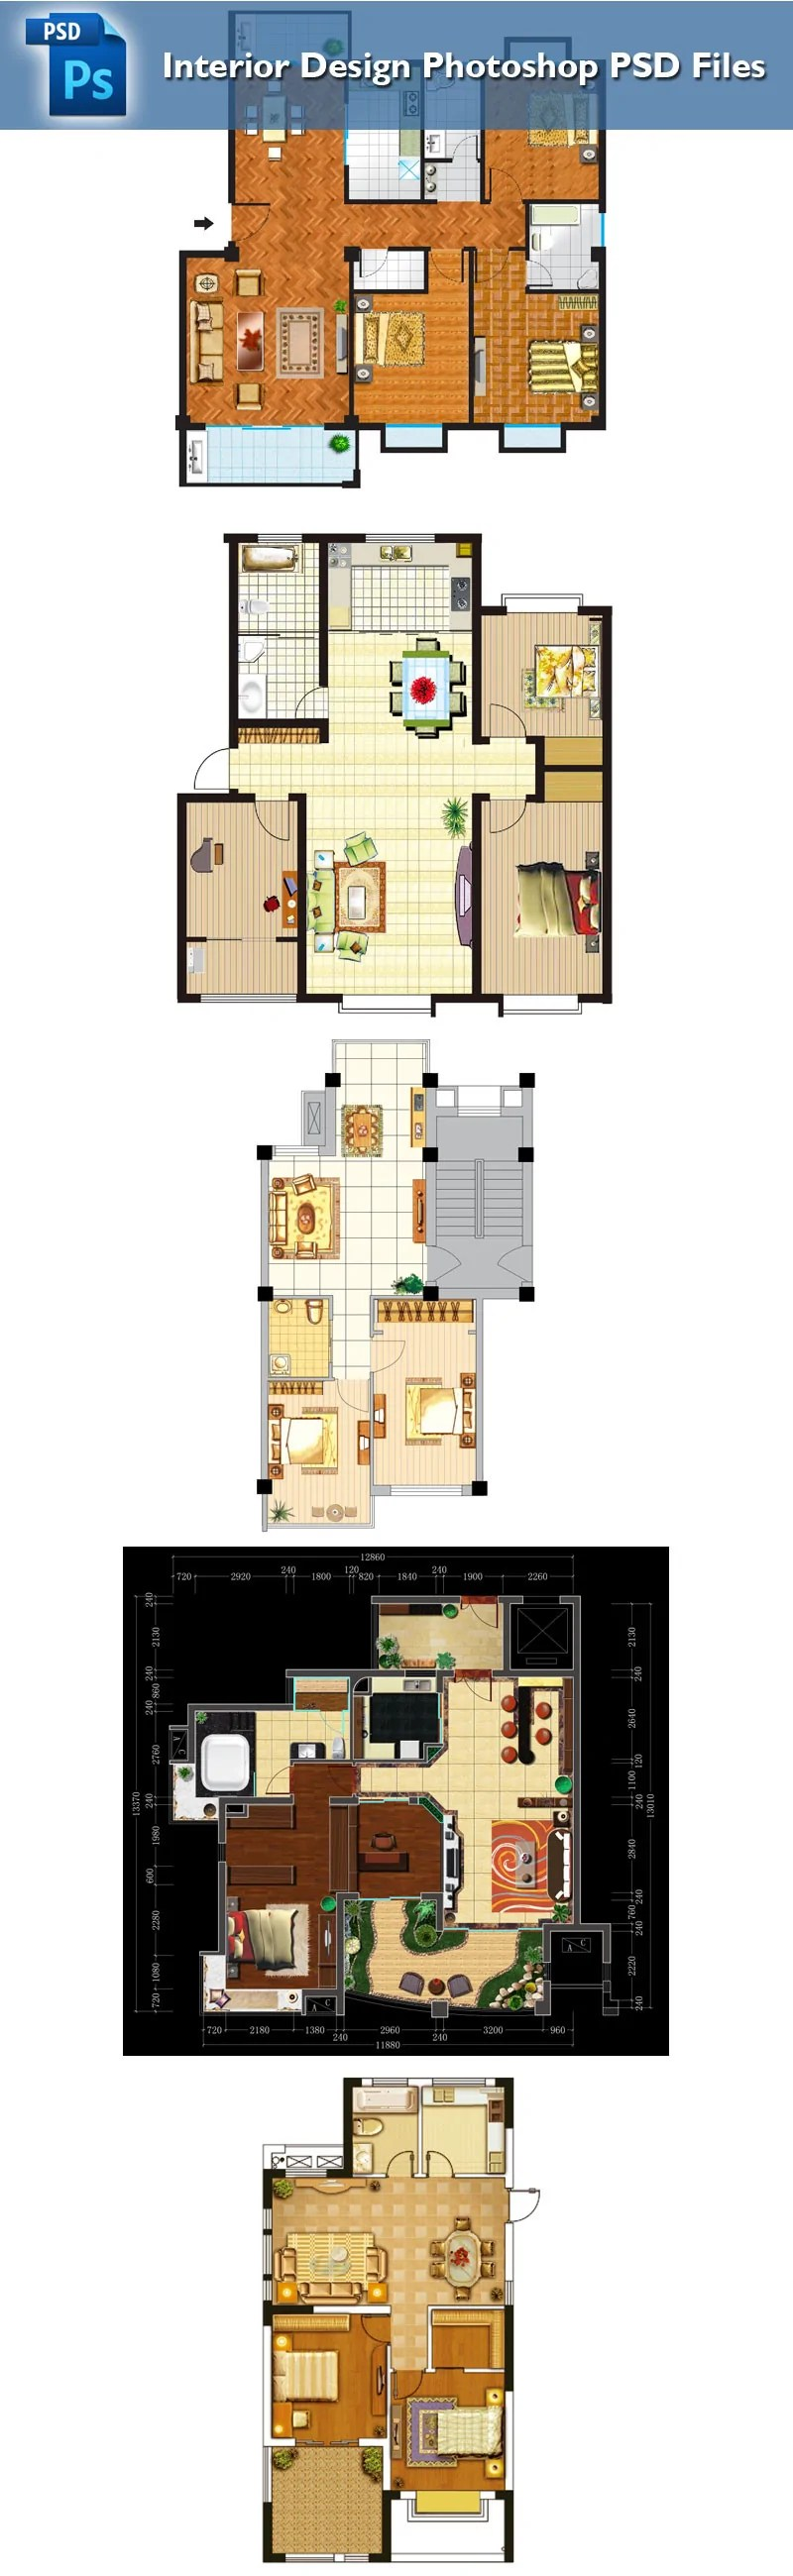 15 Types of Interior Design Layouts Photoshop PSD Template V.2